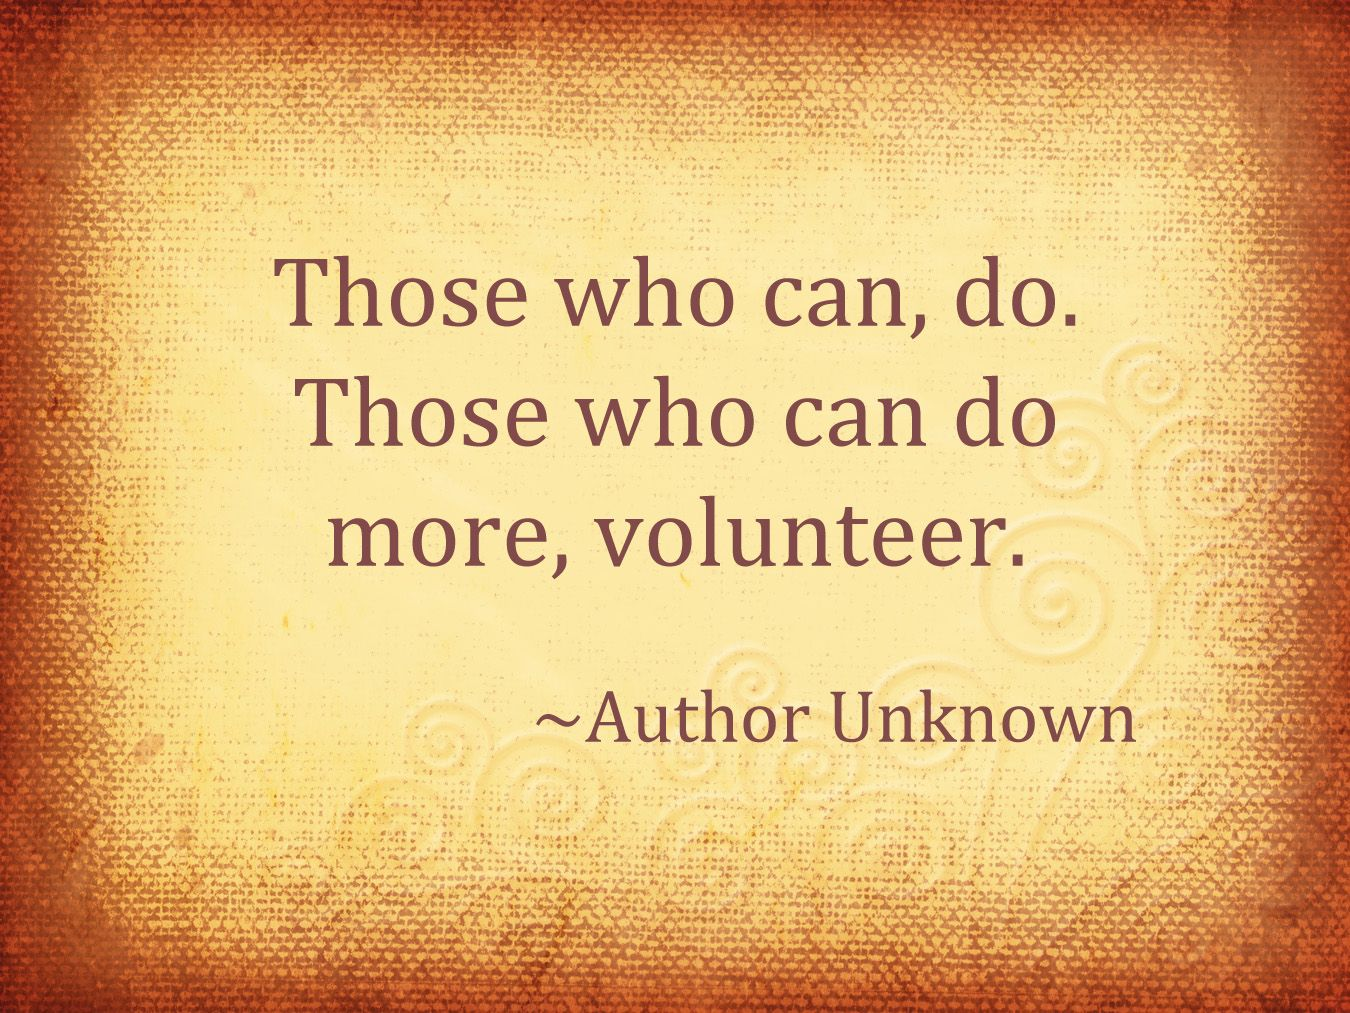 Volunteering Quotes Those Who Can Dothose Who Can Do More Volunteer Motivating